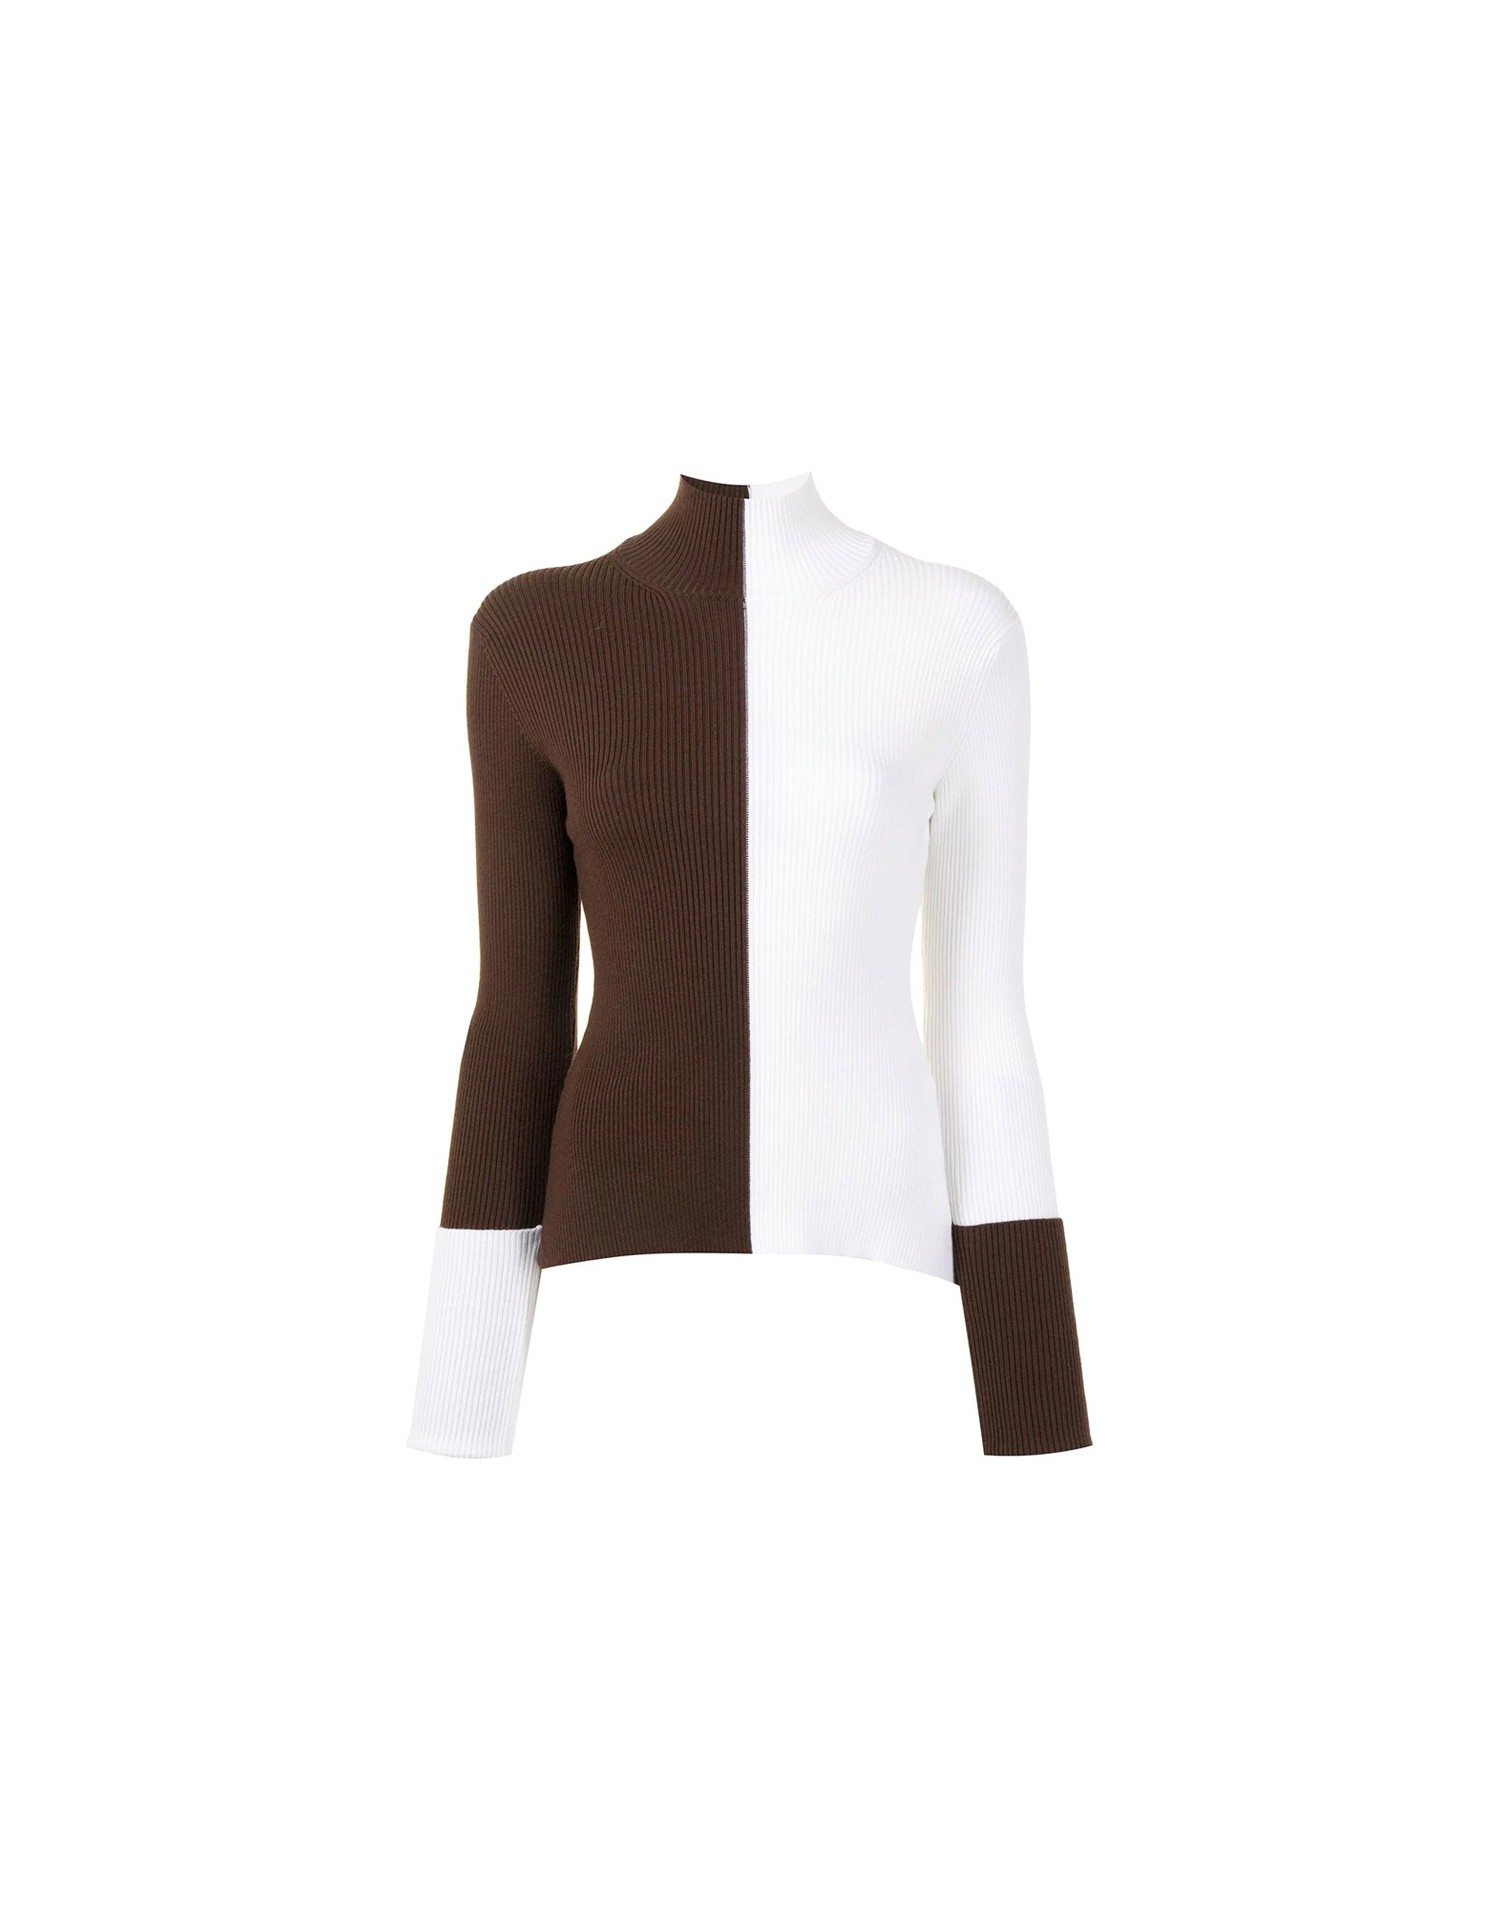 MONSE Ribbed Color Block Turtleneck Knit in Ivory and Chocolate Flat Front